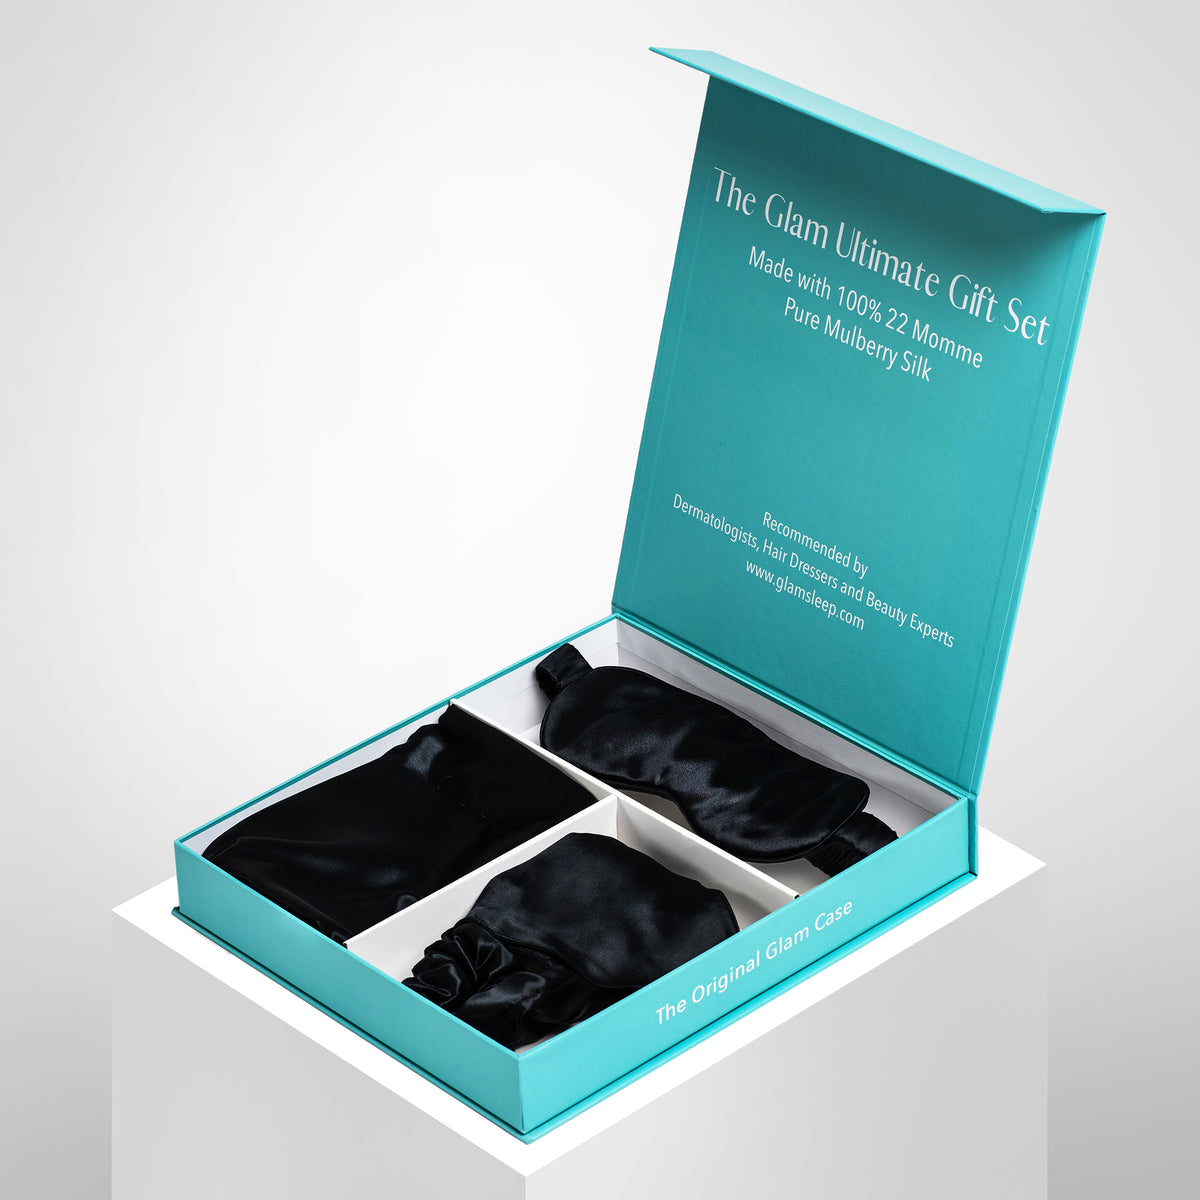 The Glam Ultimate Gift Set